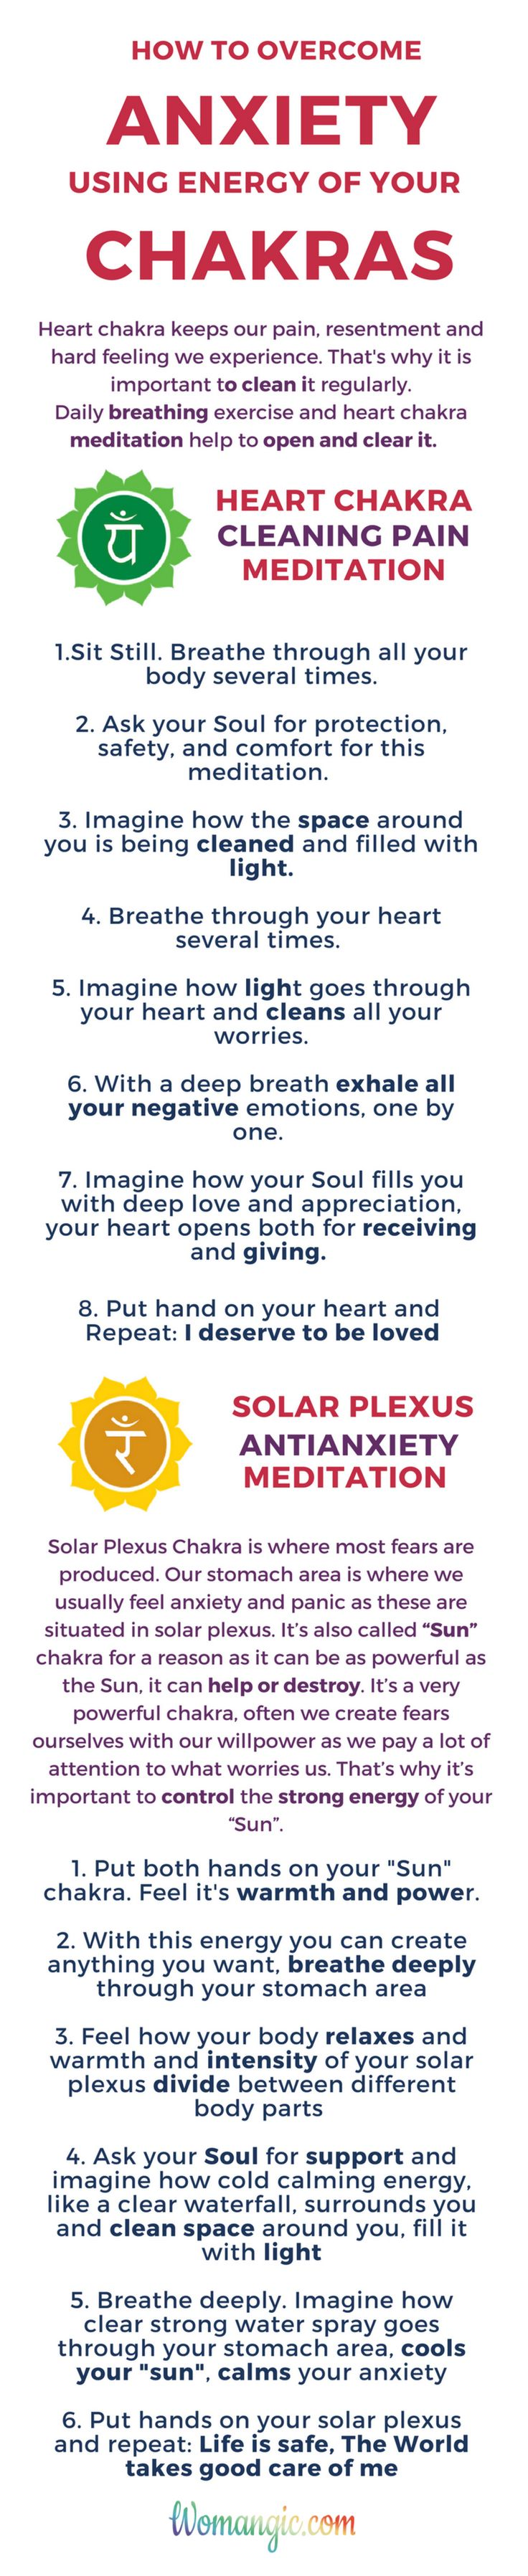 We all struggle with anxiety and panic from time to time. I believe spiritual practices meant to help us live better, so we can use them to balance and make our life happier and more fulfilled. These practices help me with worries and anxiety and I can't imagine living without them, it could be really hard when we panic, but there is a way to overcome it fast and effective, using energy of our own chakras and Soul. If you interested in this topic related reading  (link to this post).